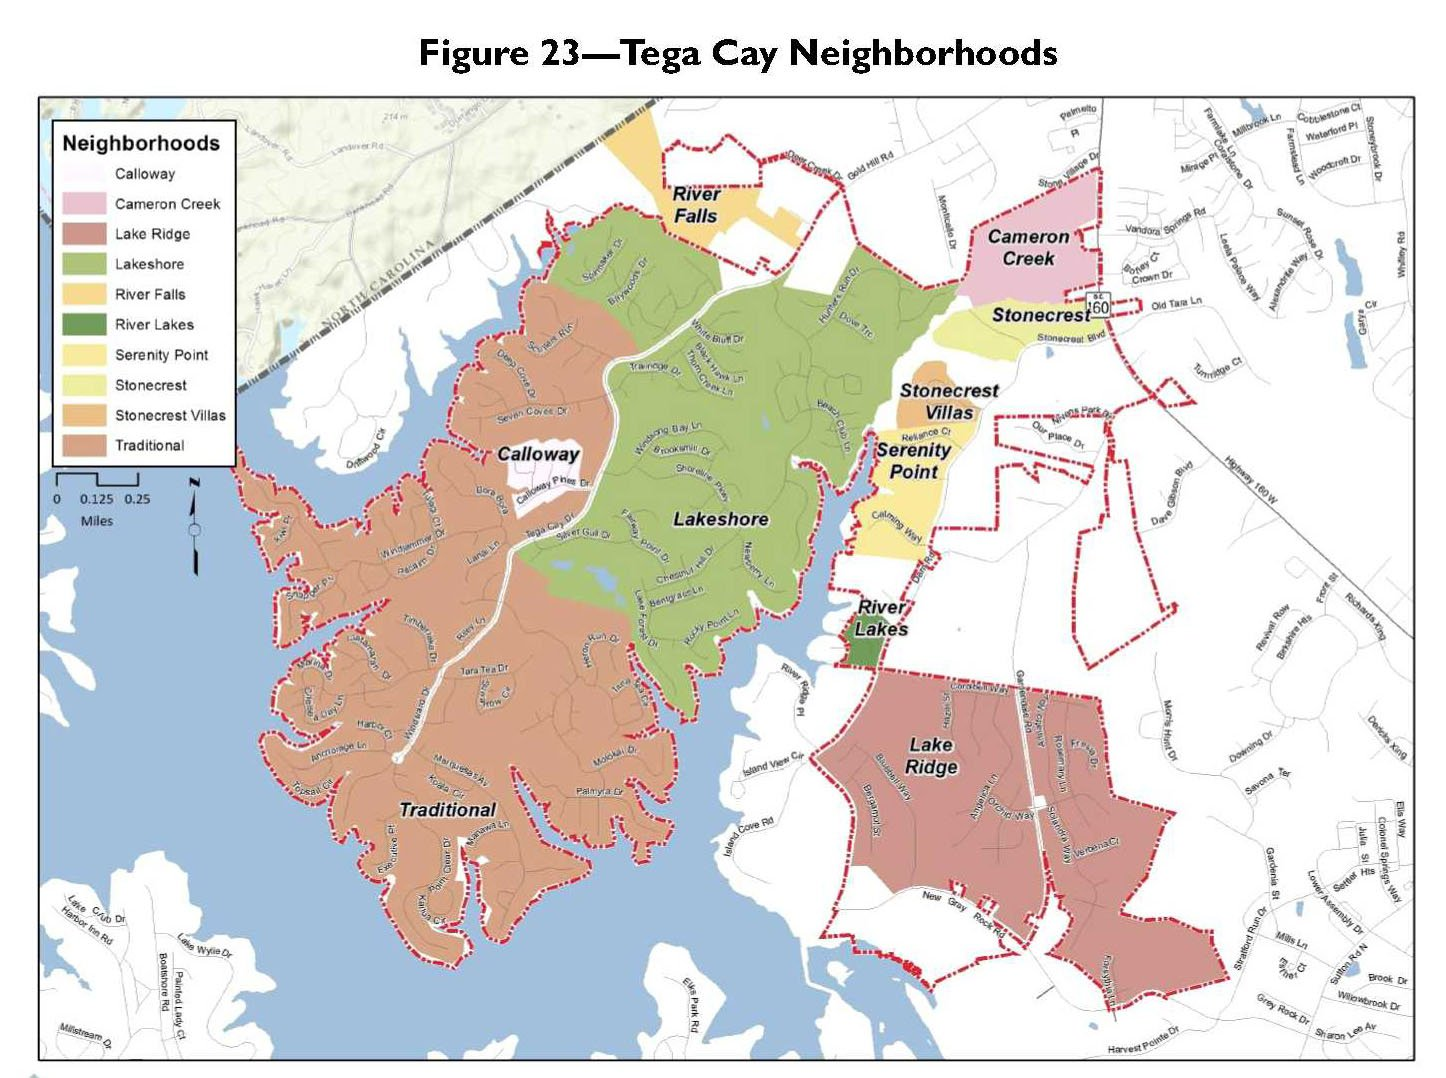 Tega-Cay-Neighborhoods-Map